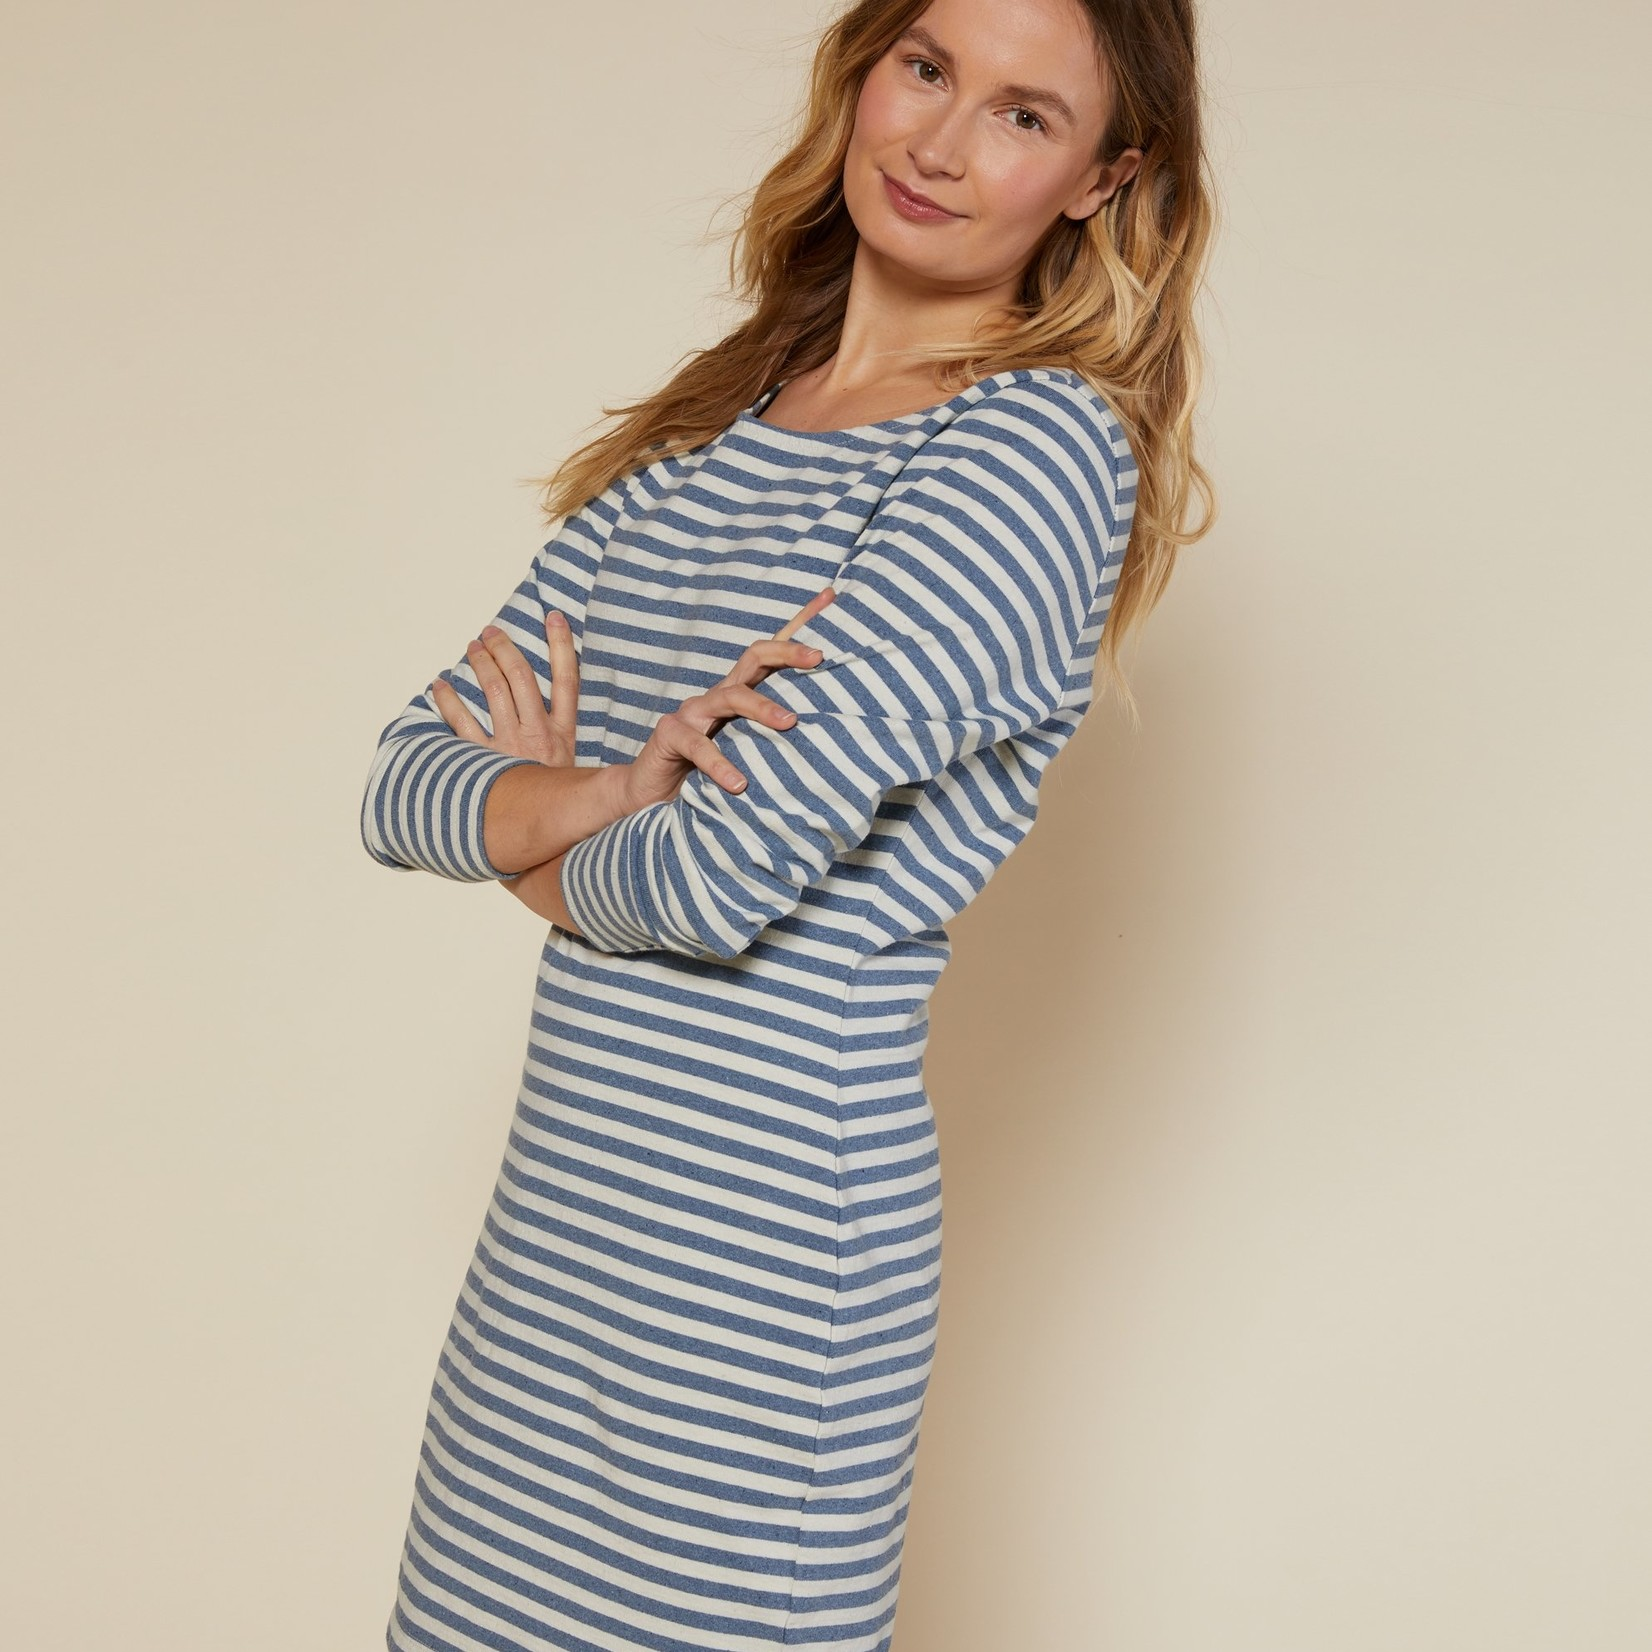 Outerknown Outerknown NDP Boatneck Dress